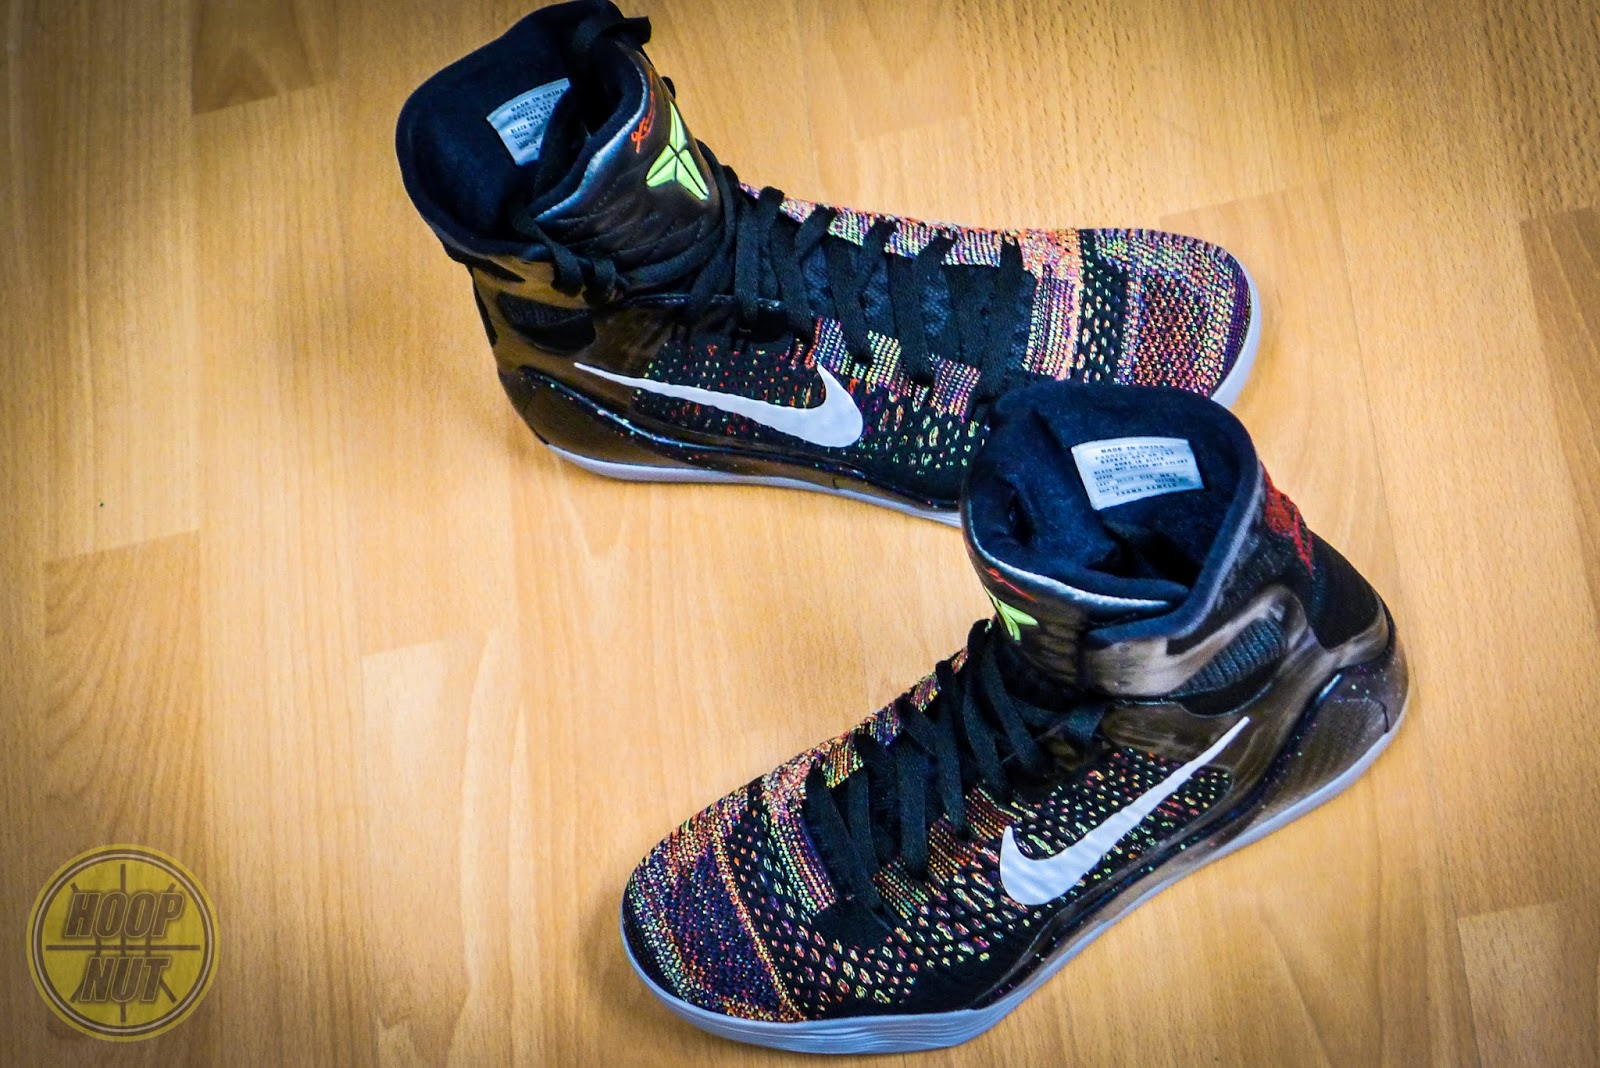 fcbbbb1ab351 The NBA  KOBE 9 Elite featuring Nike Flyknit - Hoop Nut